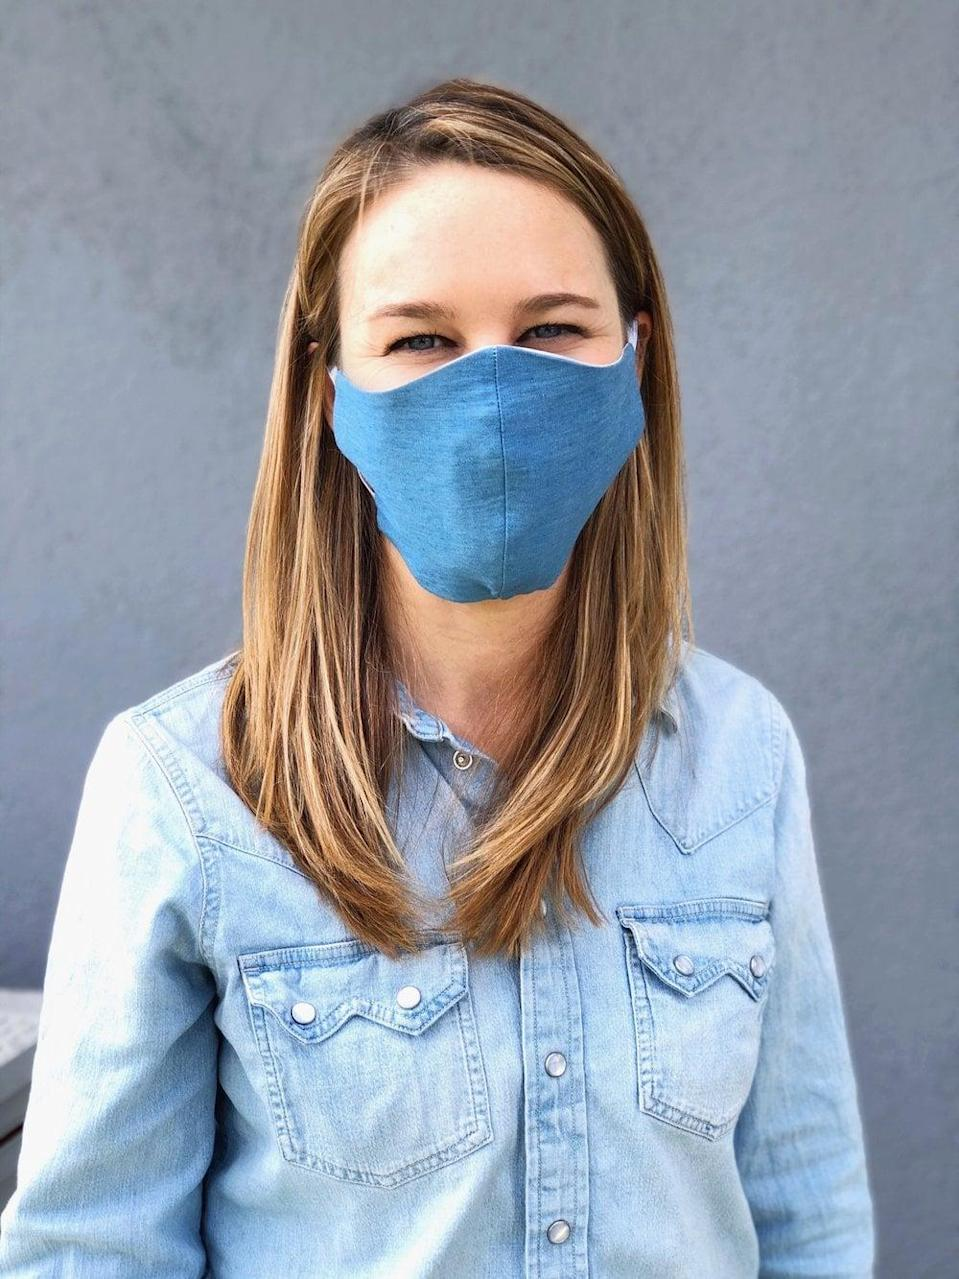 <p>For every one <span>Look Good Do Good Chambray Mask</span> ($22) bought, two are donated to at-risk patients and healthcare workers in need. They are made with chambray cotton and are machine washable.</p>